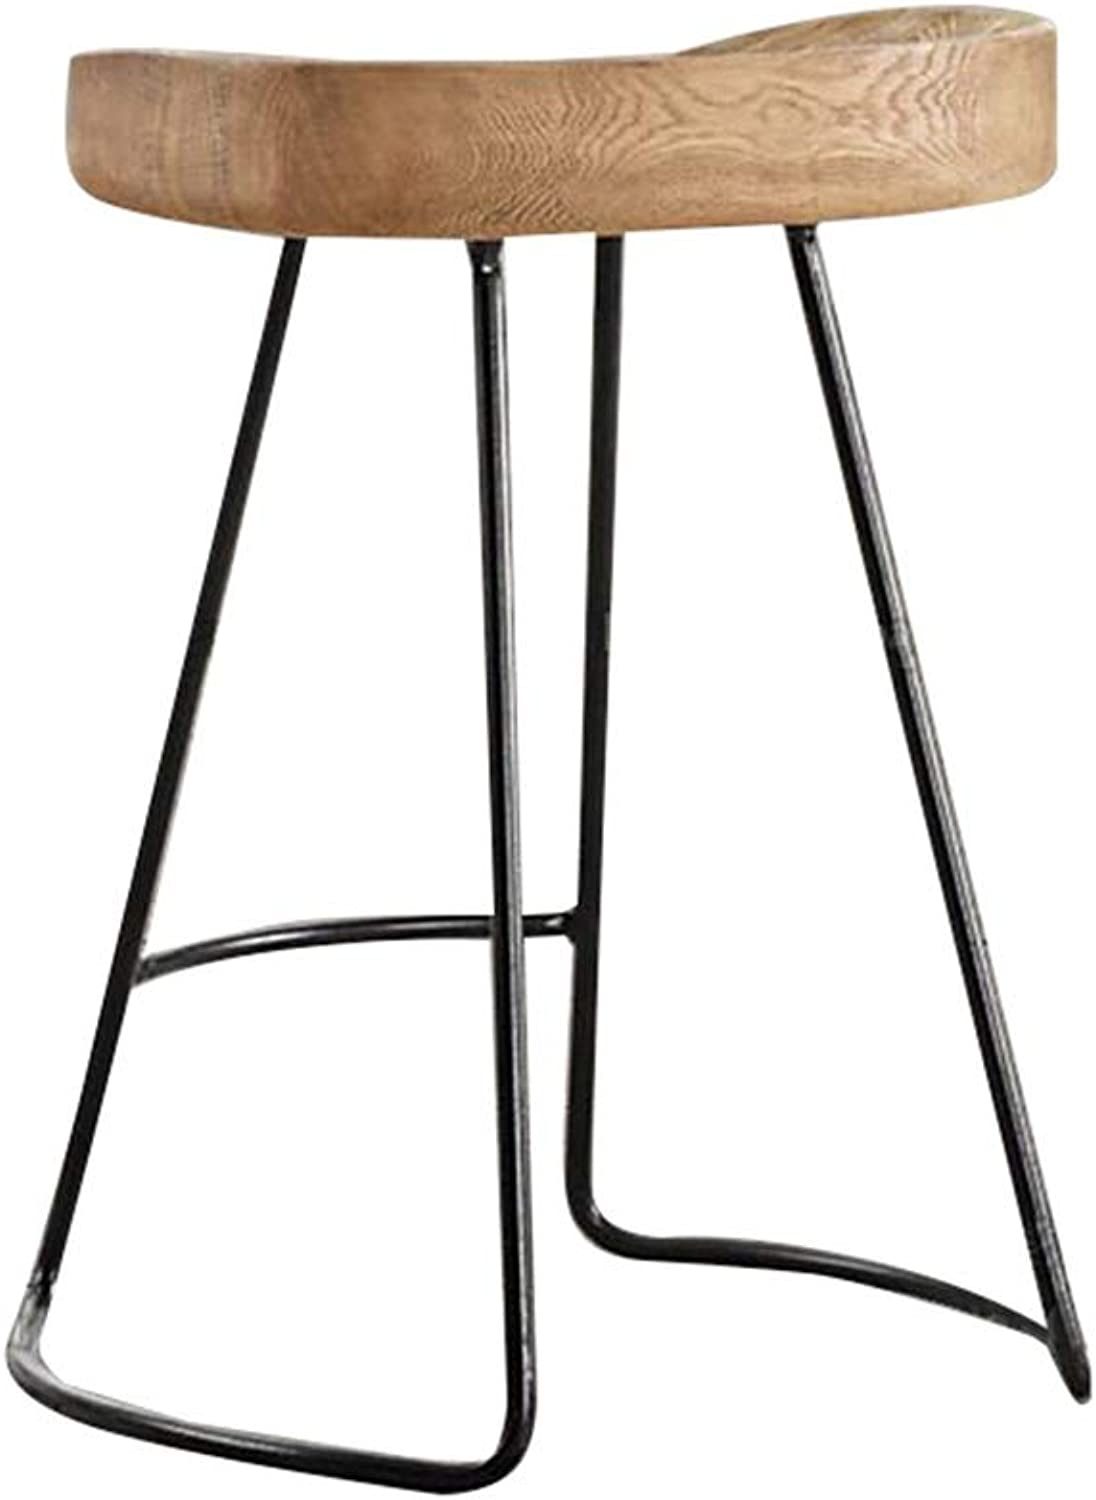 Barstool Wooden Iron Breakfast Dining Stool Ergonomic Seat for Kitchen Bar Counter Home Commercial Chair High Stool LOFT Industrial Concise Style (Size   Height 55cm)